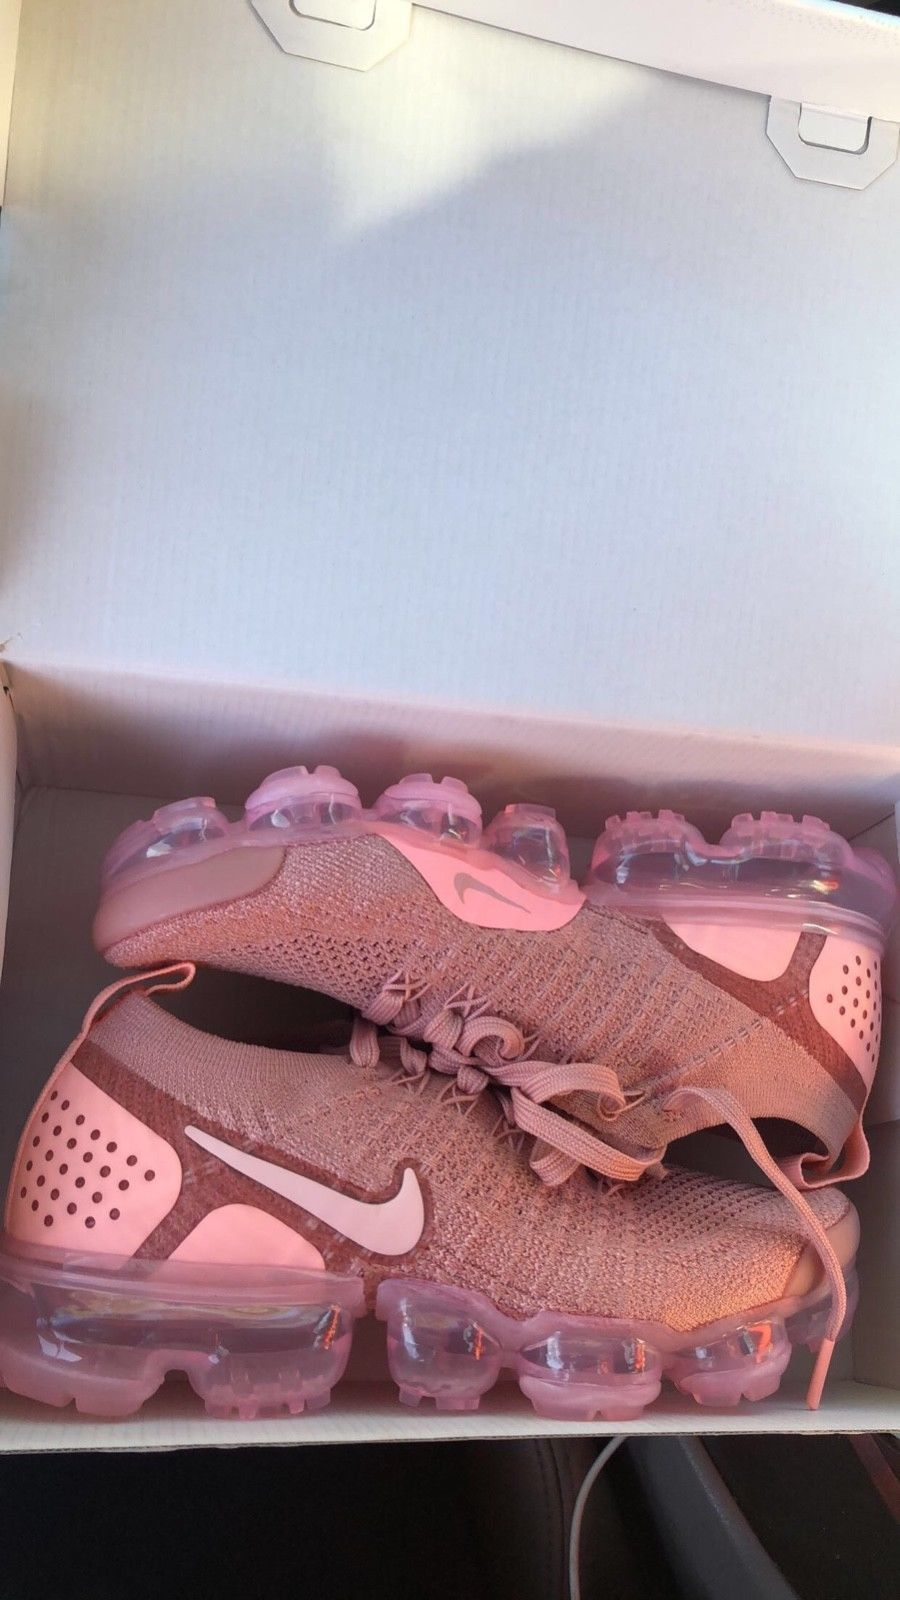 f415e31894 Details about Nike Air VaporMax Pink Flyknit 2 New Women's Shoes ...